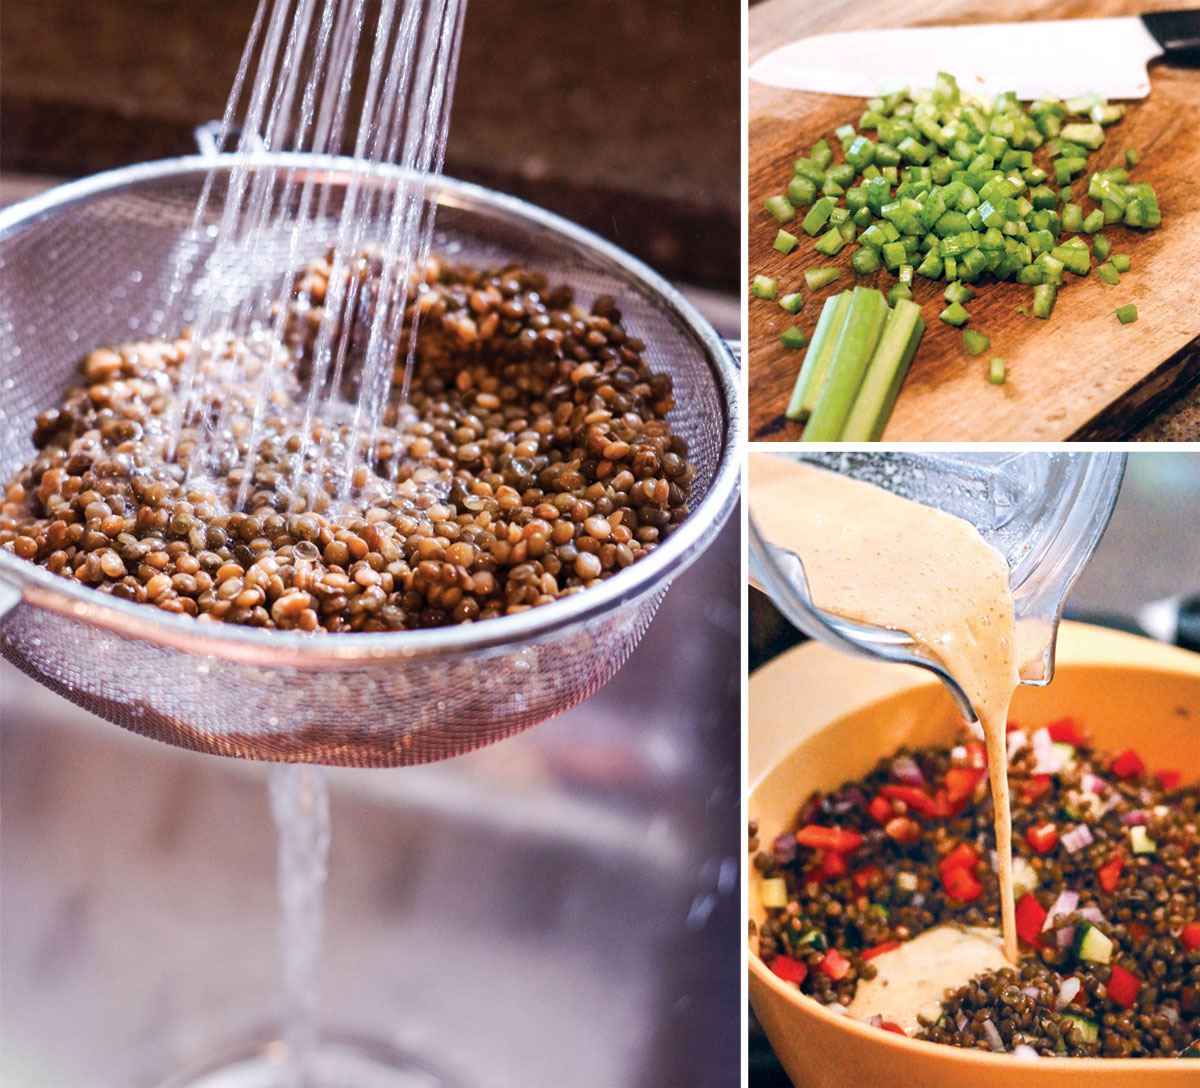 rinsing lentils with water in a strainer, cutting celery on a cutting board, and pouring dressing over lentil salad